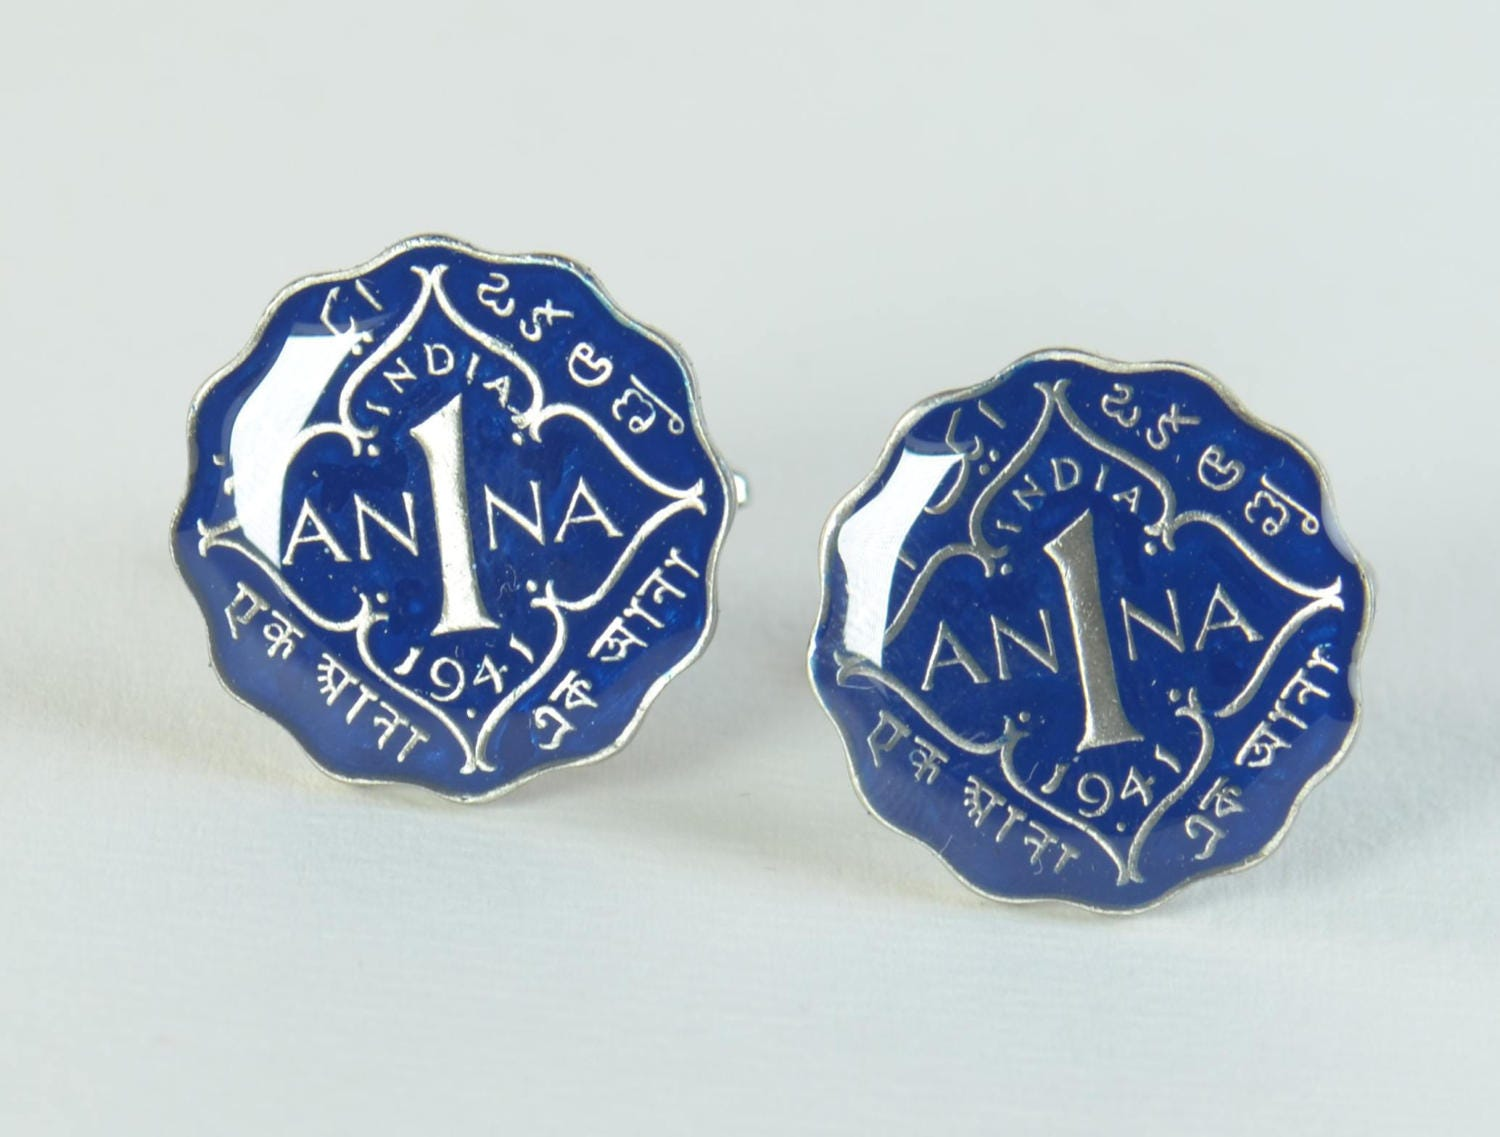 Enamel  Cufflinks-India Coin Coin Collector Gifts,Dad Coin Gift,Upcycled,mens gift accessories jewelry